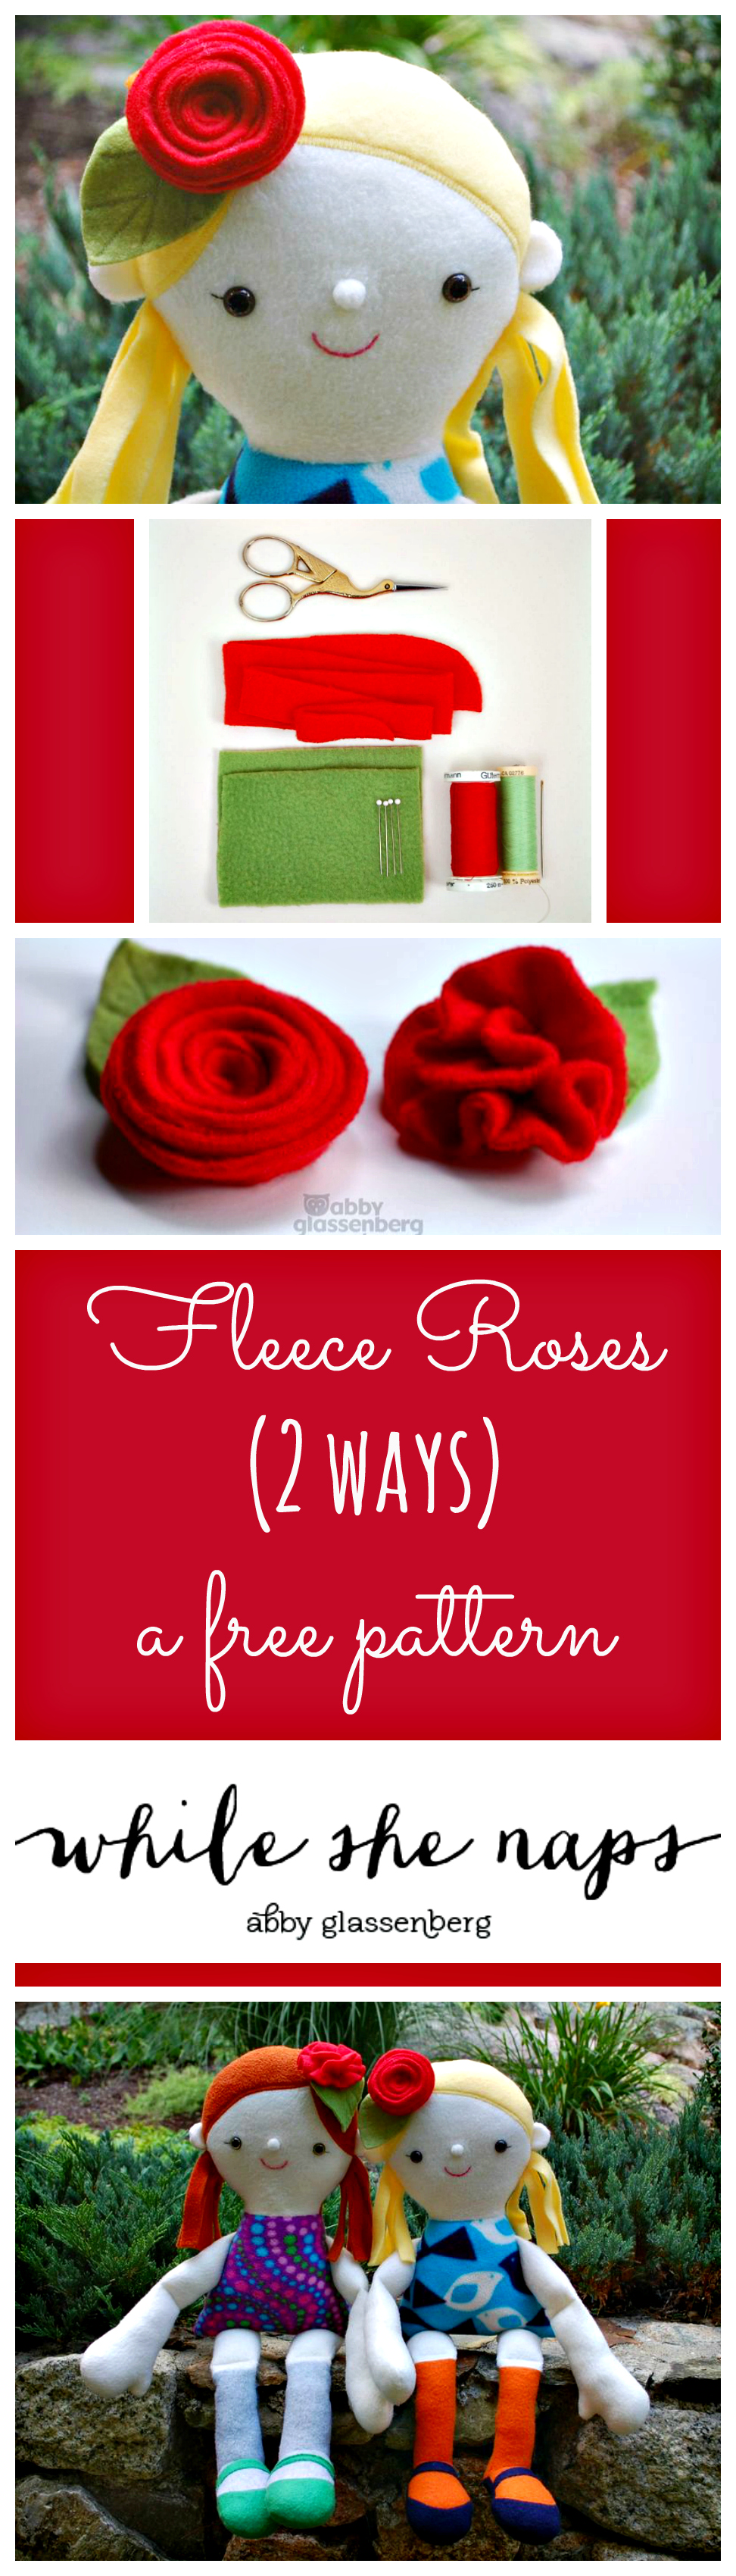 A free pattern for Fleece Roses, 2 ways.